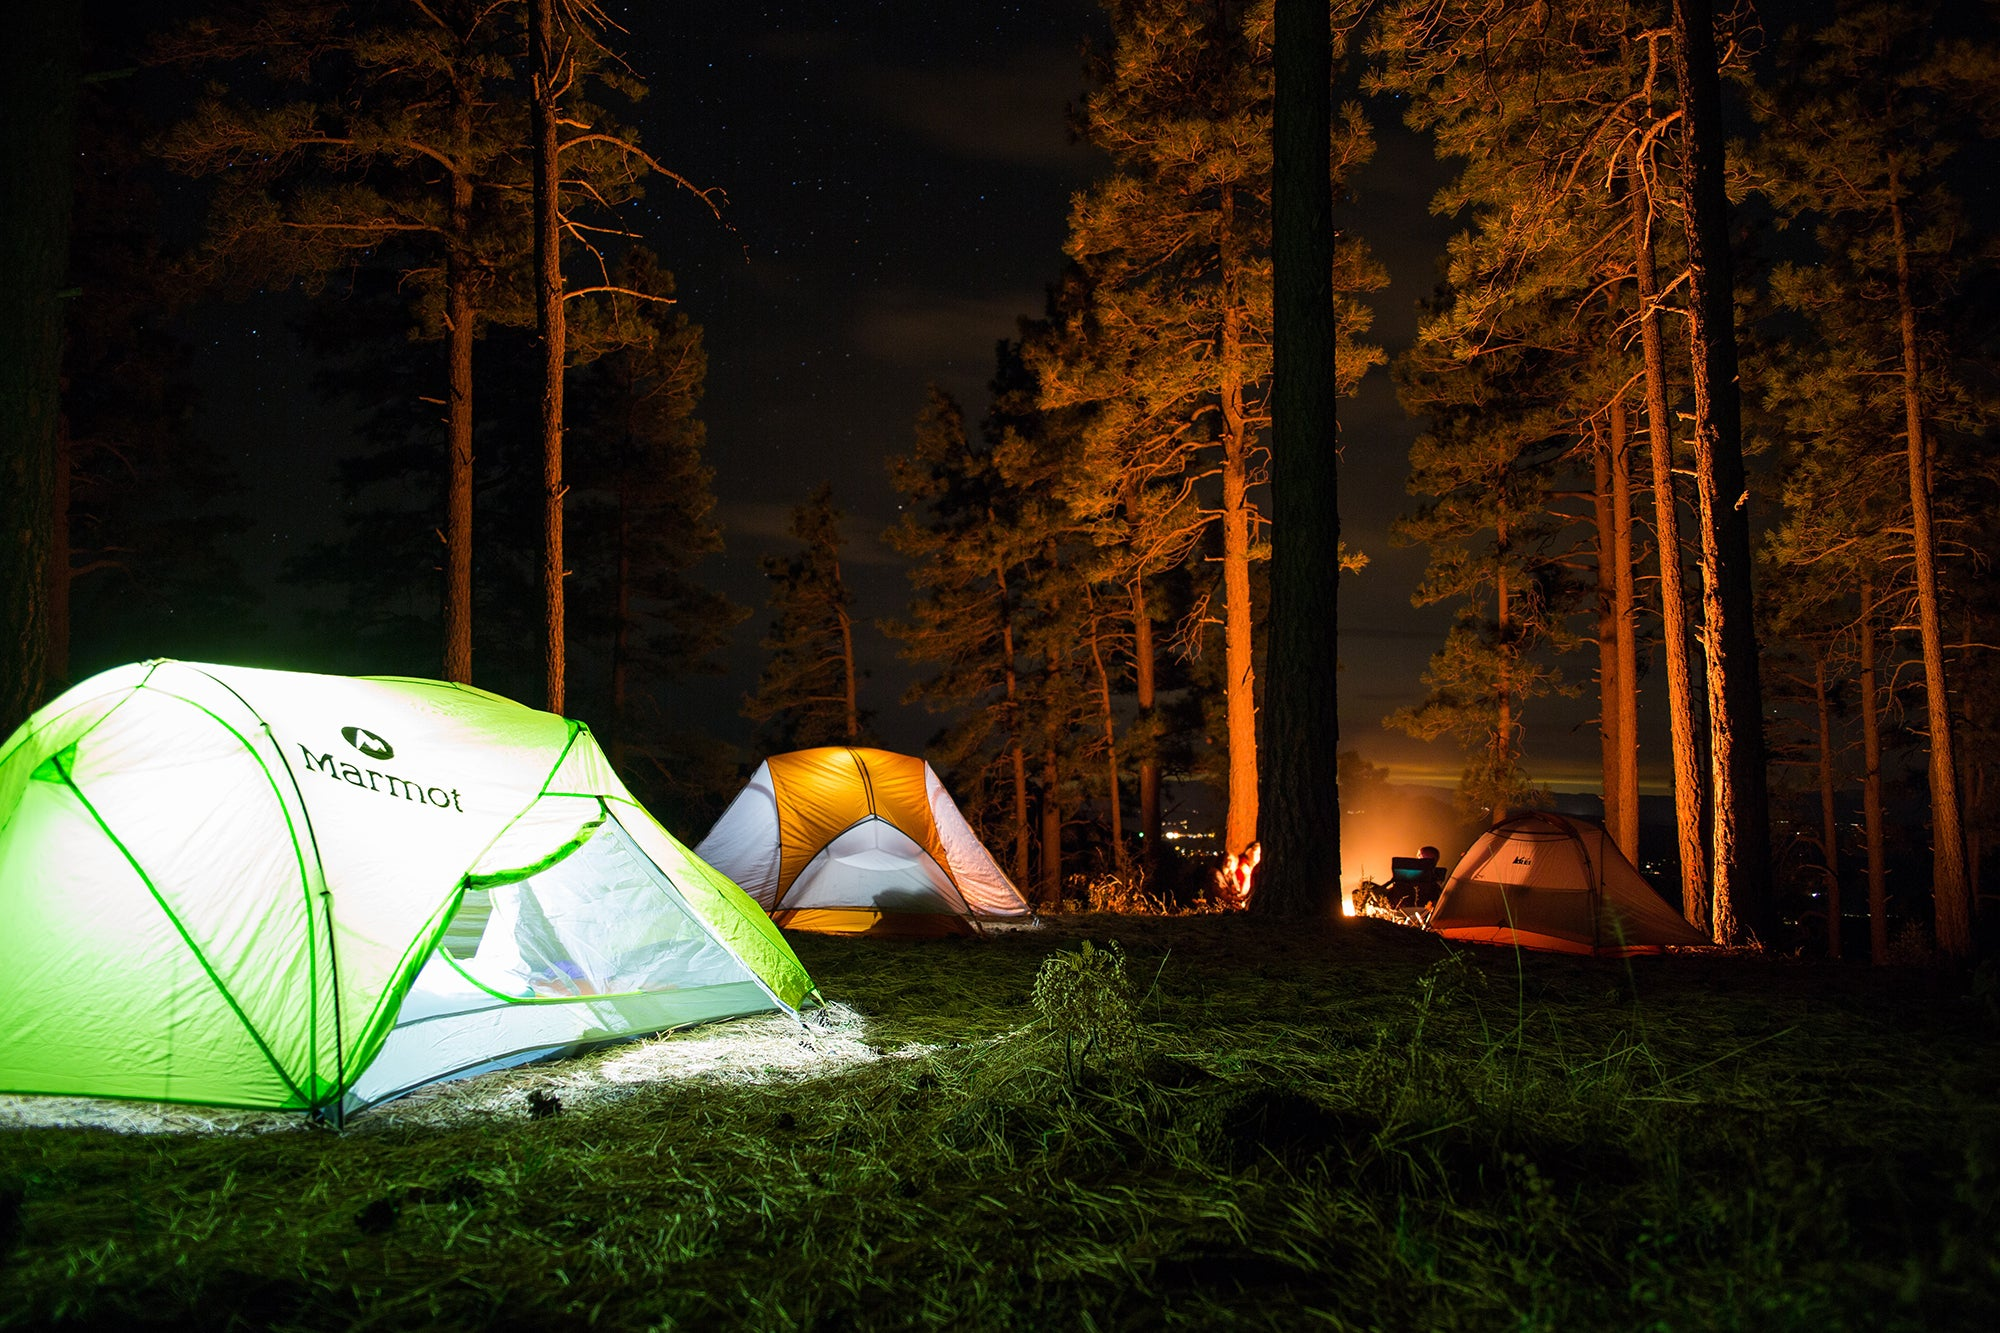 tents at night with lights on